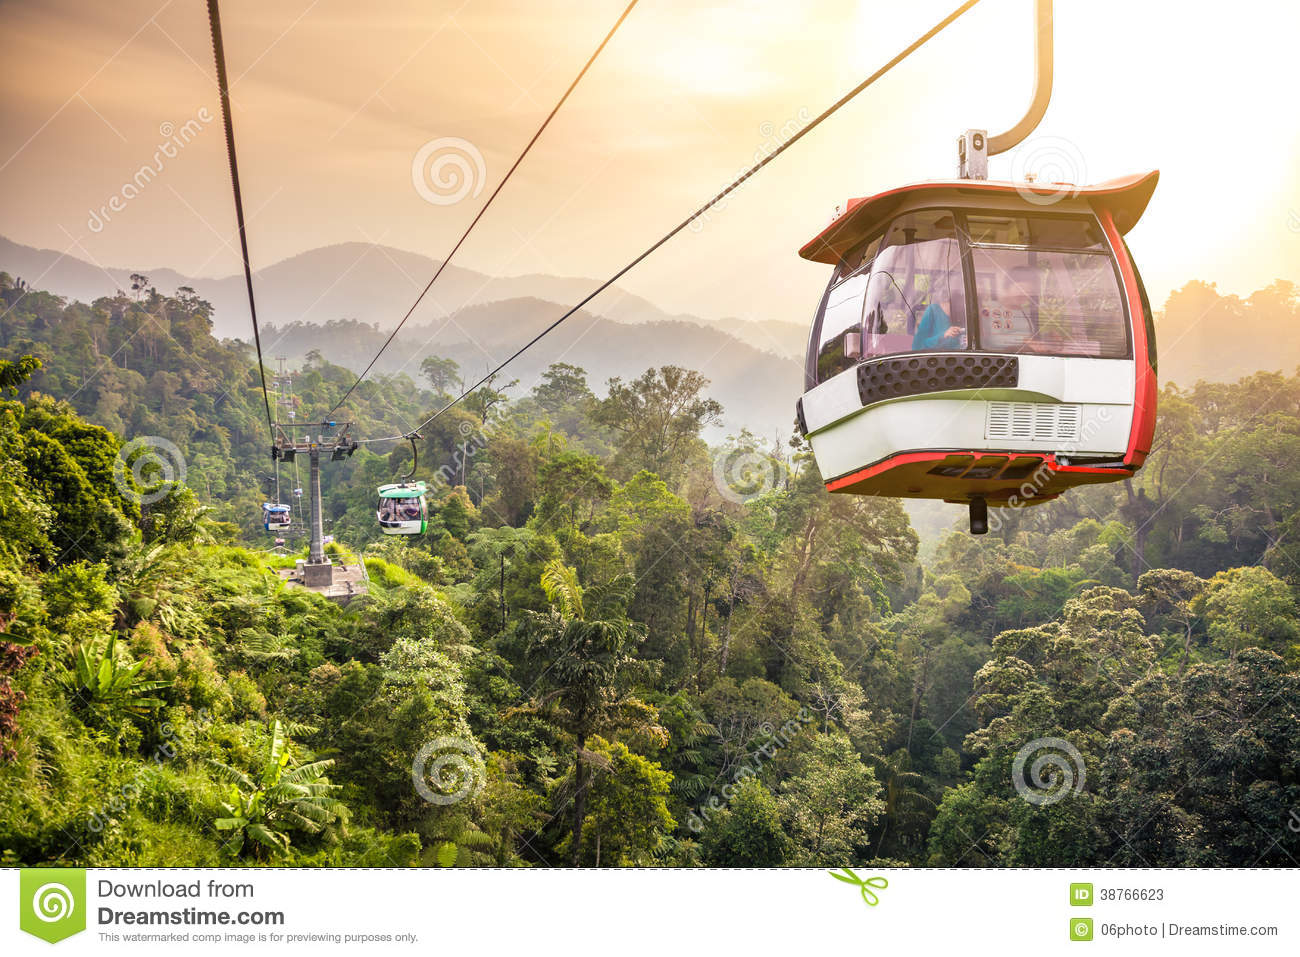 Aerial Tramway Moving Up In Tropical Jungle Mountains Stock Photos.